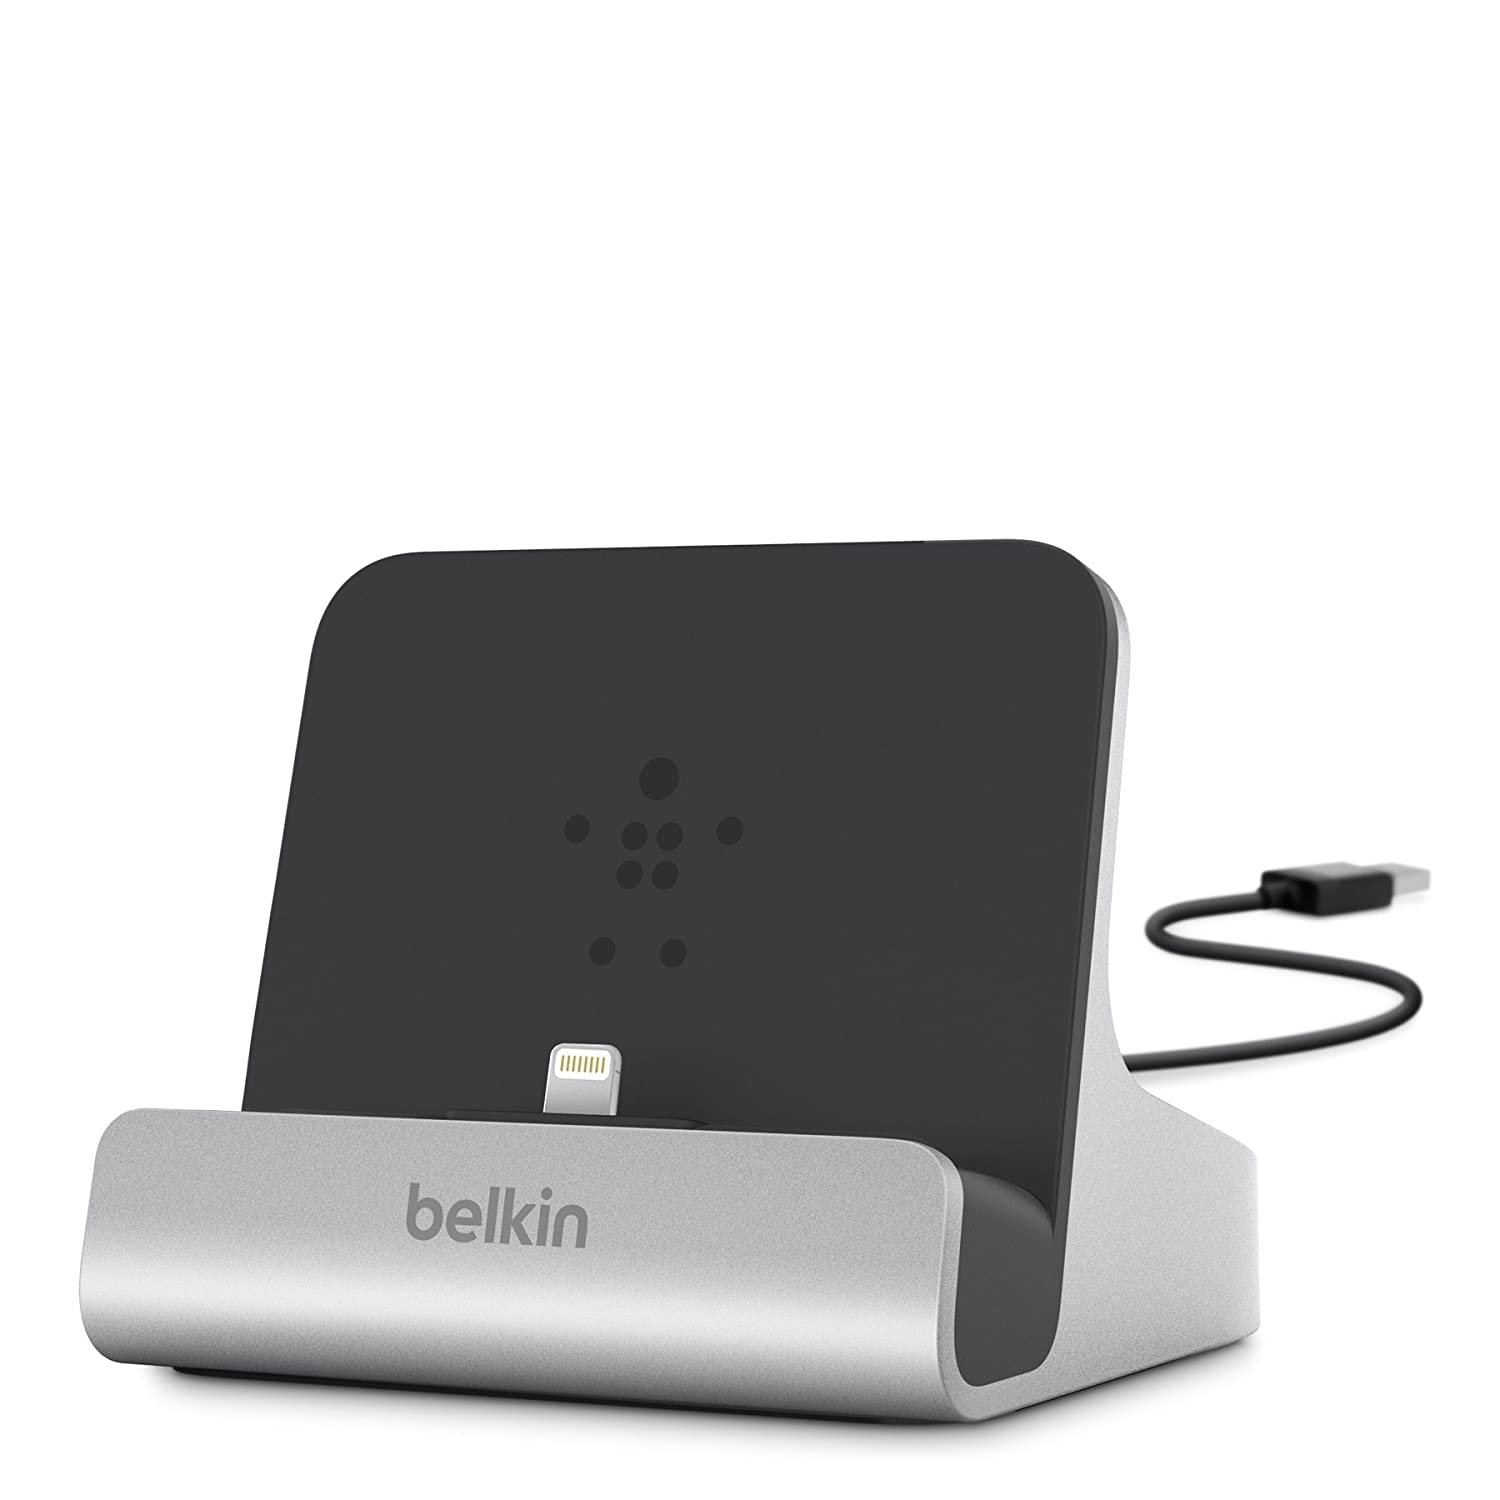 Belkin ChargeSync Lightning Express Dock with 4-Foot Charging Cable